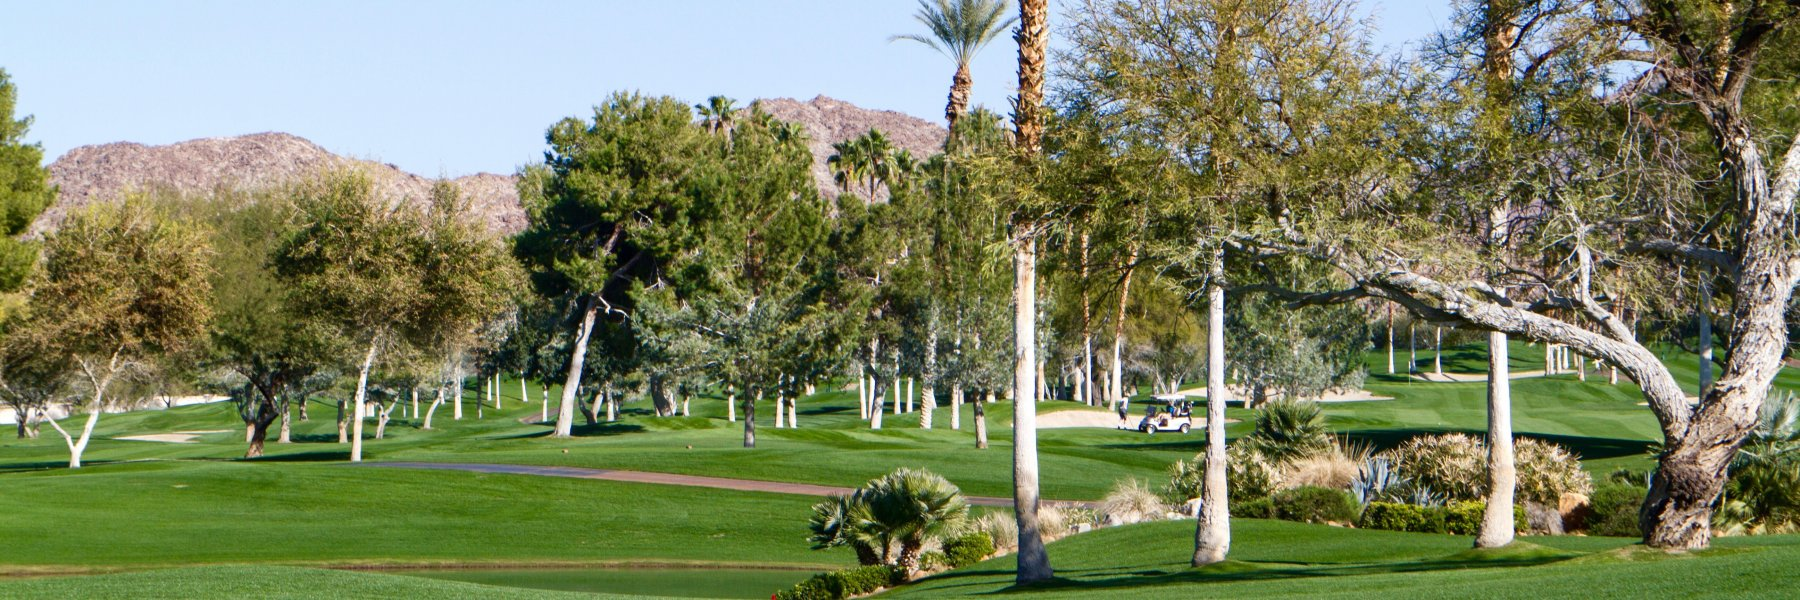 Ironwood Country Club is a community of homes in Palm Desert California